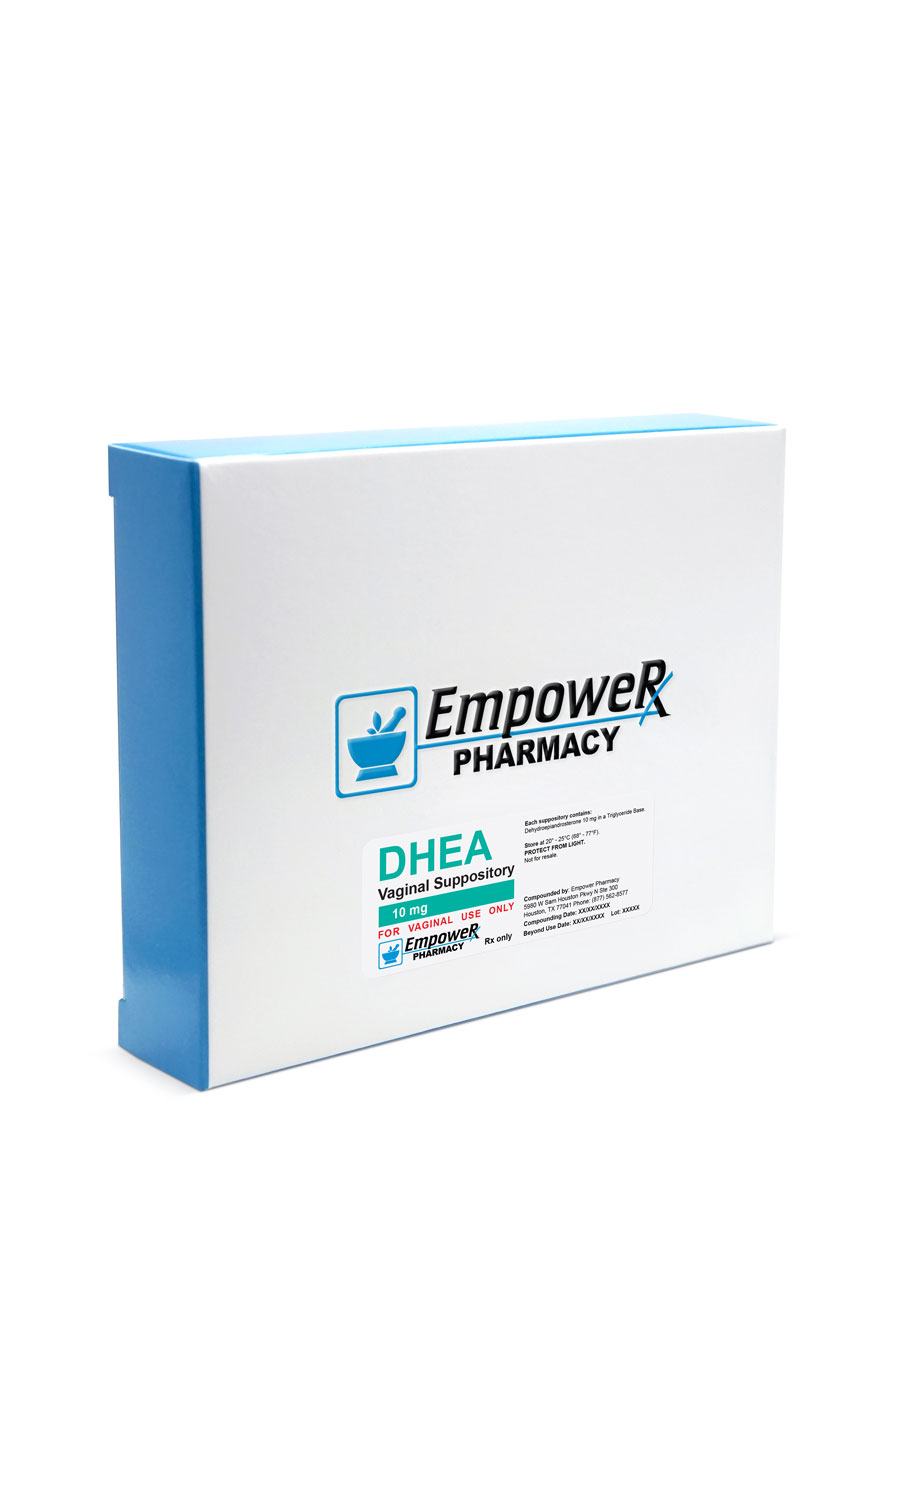 DHEA Vaginal Suppository 10 mg